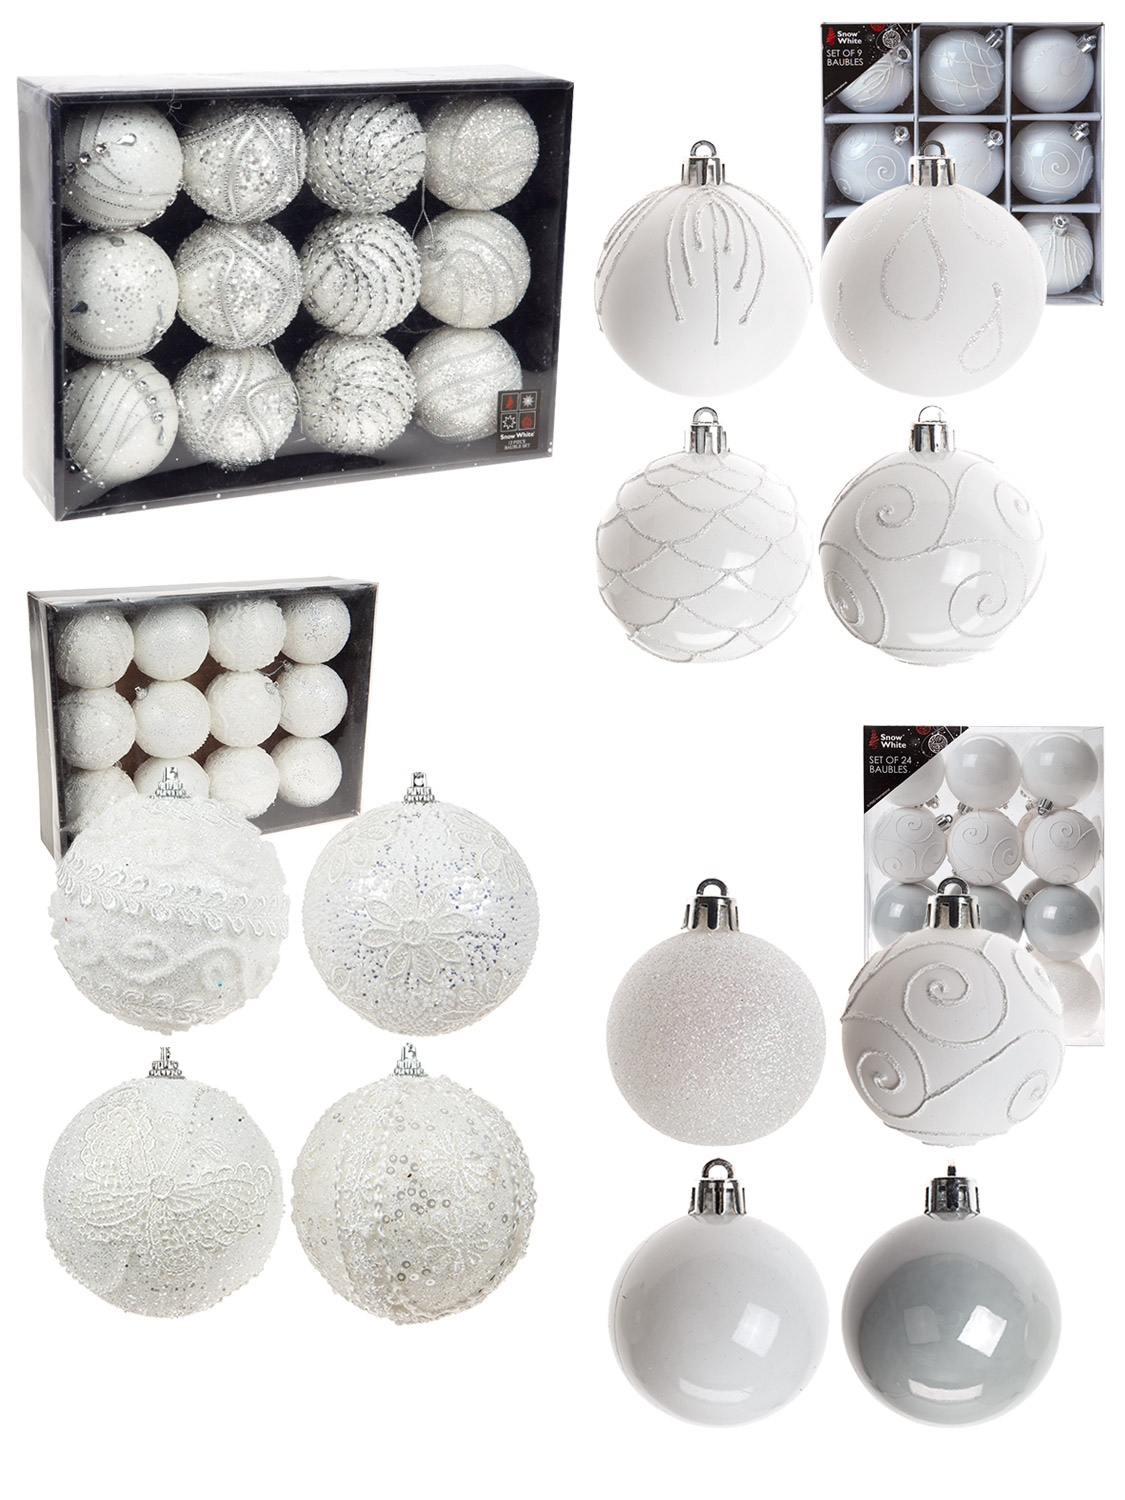 Crochet Christmas Tree.Details About Deluxe White Crochet Christmas Tree Baubles Luxury Grey Xmas Decoration